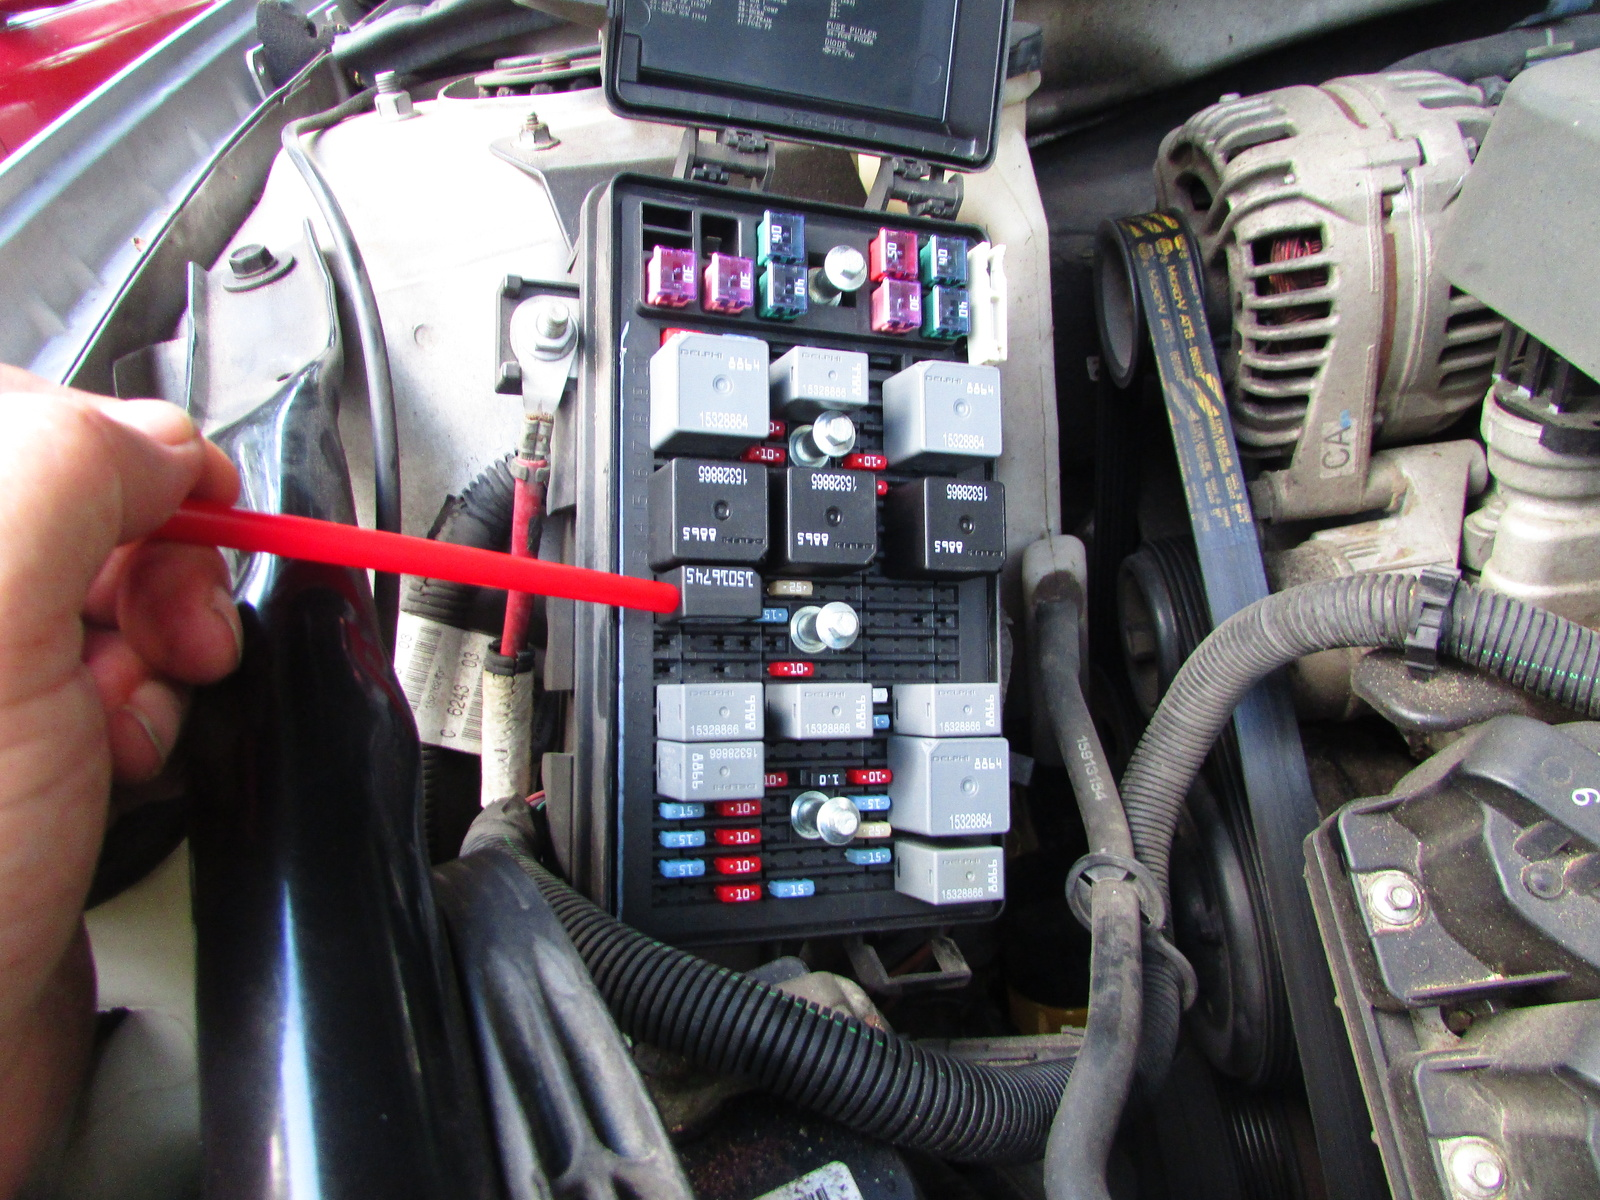 2002 Acura Tl Fuse Box Diagram moreover 720624 2008 Lexus Rx 350 Knock Sensor Location together with Watch moreover Elec116 besides Discussion T27042 ds508299. on audi a4 fuse box location 2004 under hood